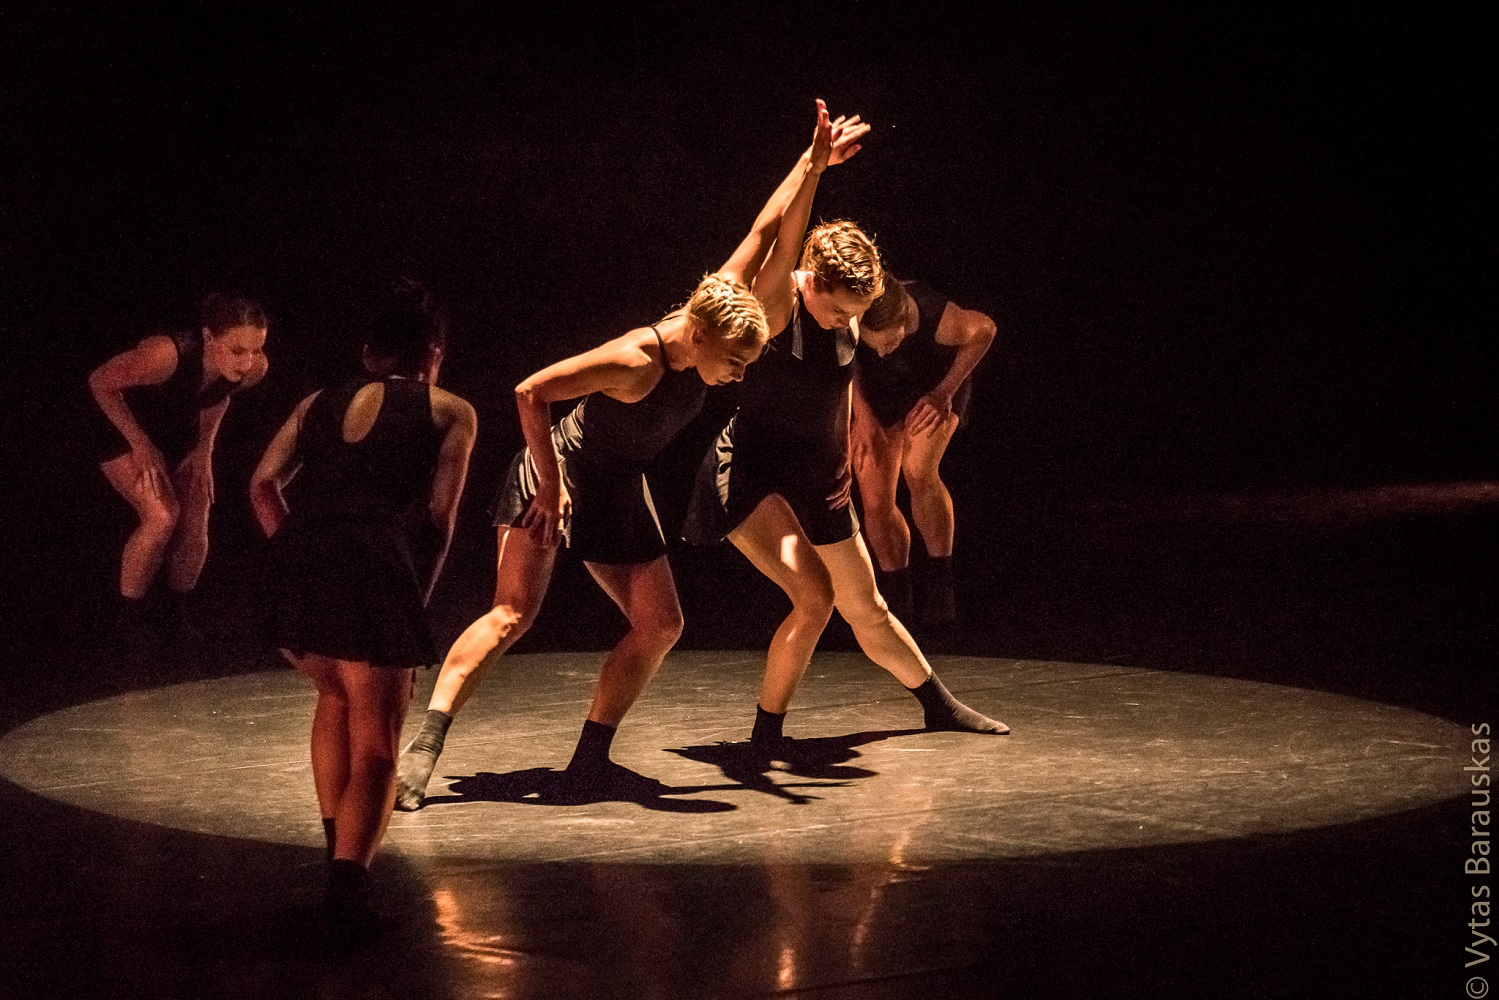 Orange County Dance Festival: From Unique to Mundane | L A